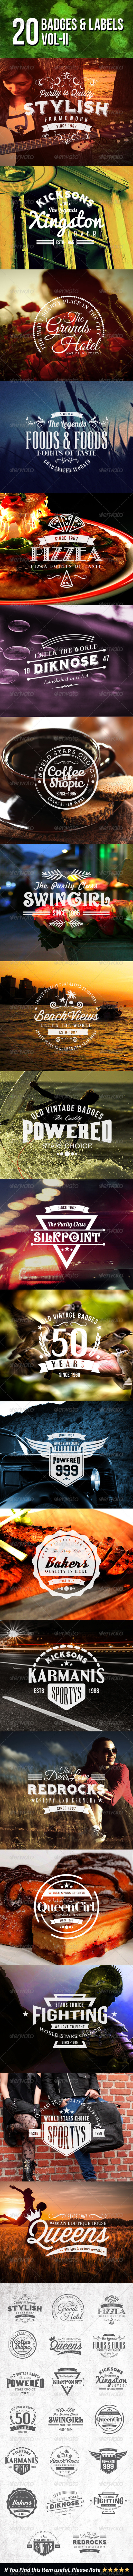 GraphicRiver 20 Badges and Labels Vol II 6959391